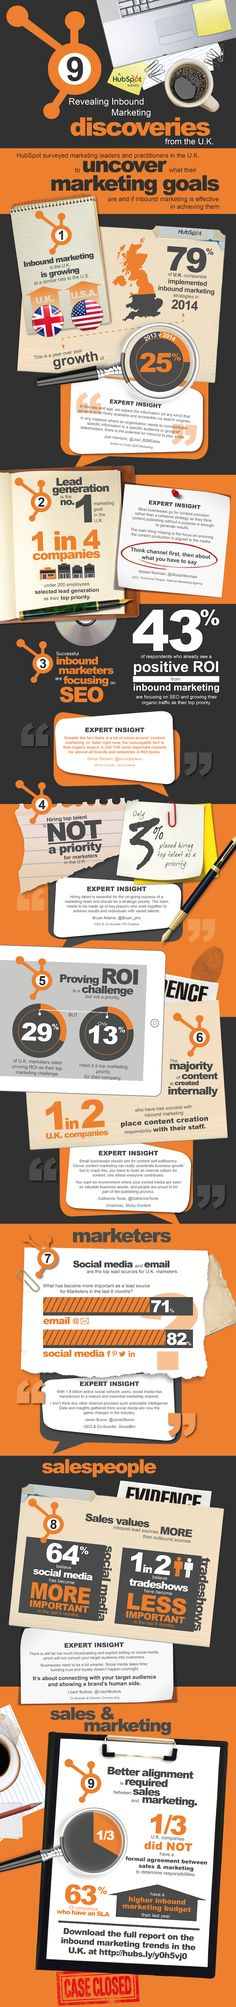 The rapid growth of inbound marketing in the UK: infographic | Econsultancy